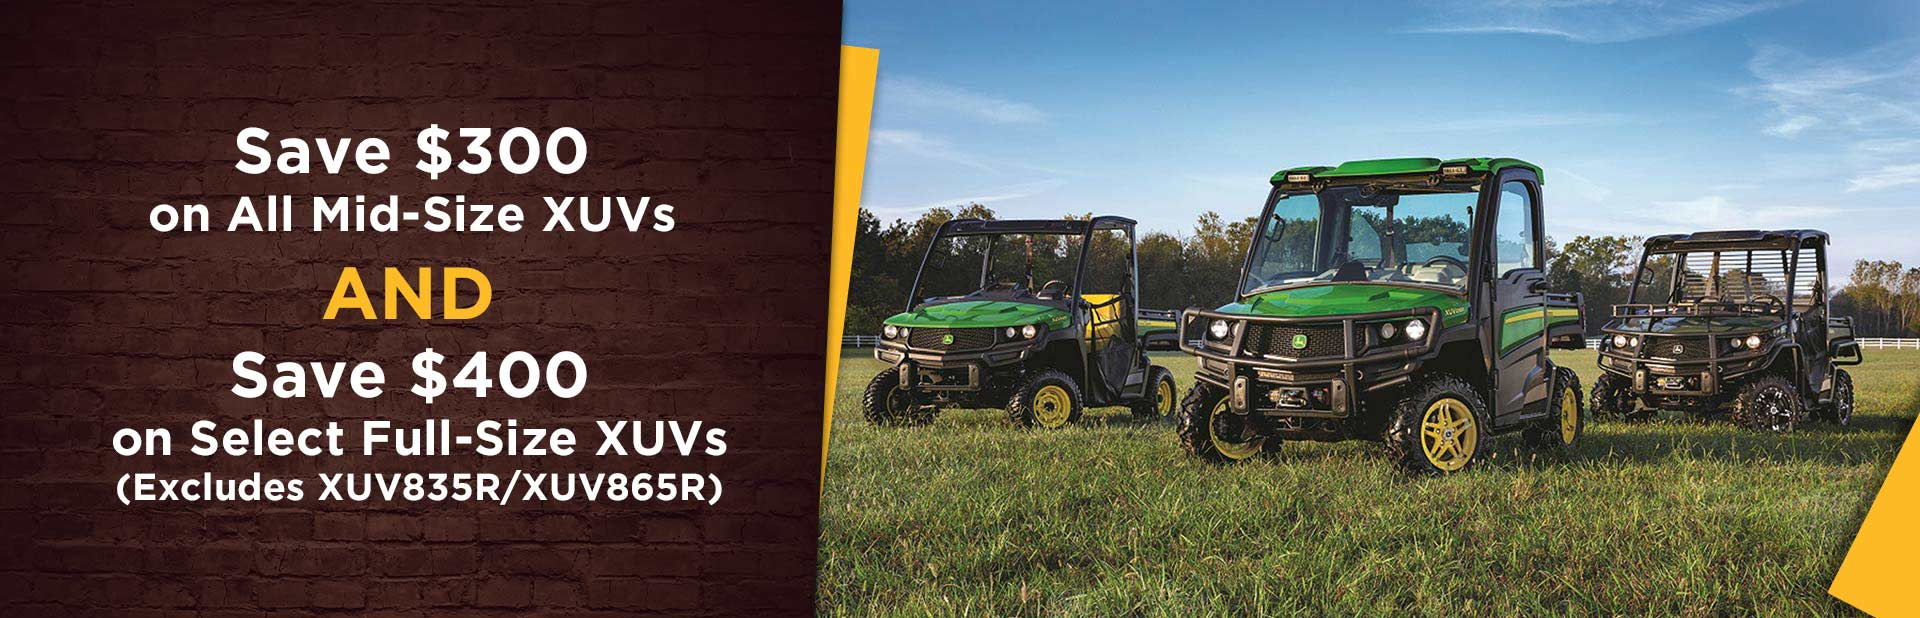 Save $300 on All John Deere Mid-Size XUVs AND Save $400 on Select Full-Size XUVs: Click here for details.